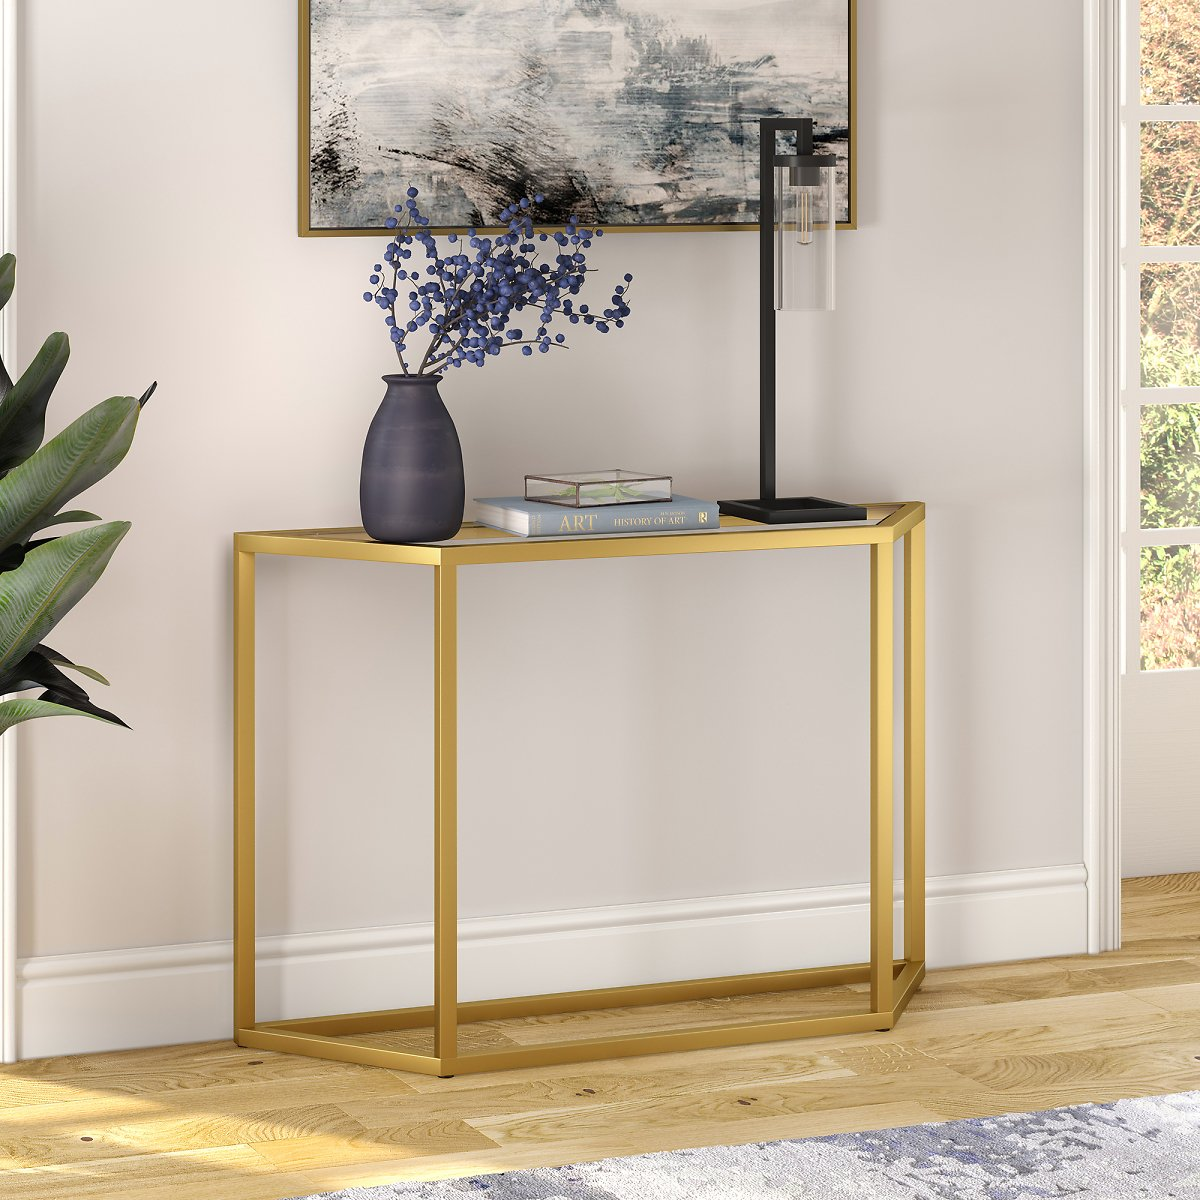 Geometric Metal Console Table, Glass Sofa Table for Living Room/Hallway/Entryway in Gold Finish, 29